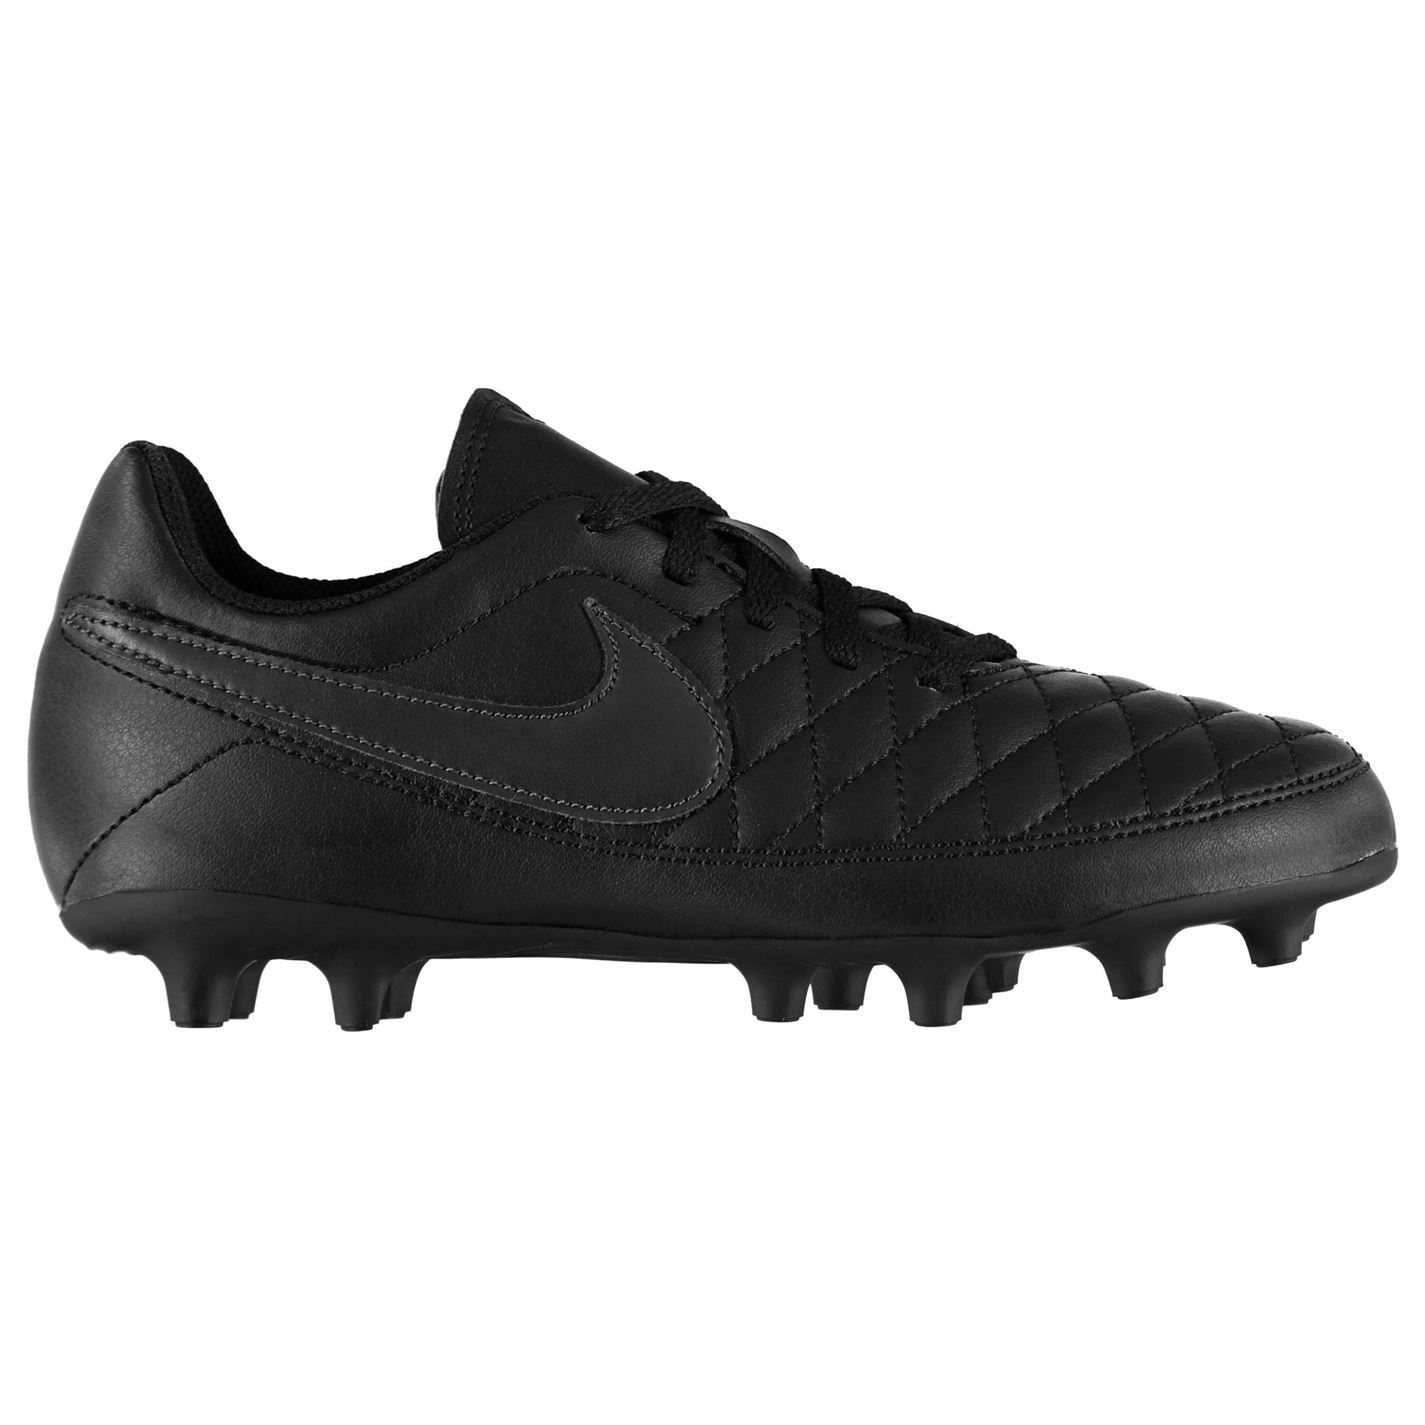 Nike-majestry-FG-Firm-Ground-Chaussures-De-Football-Enfants-Football-Chaussures-Crampons miniature 4